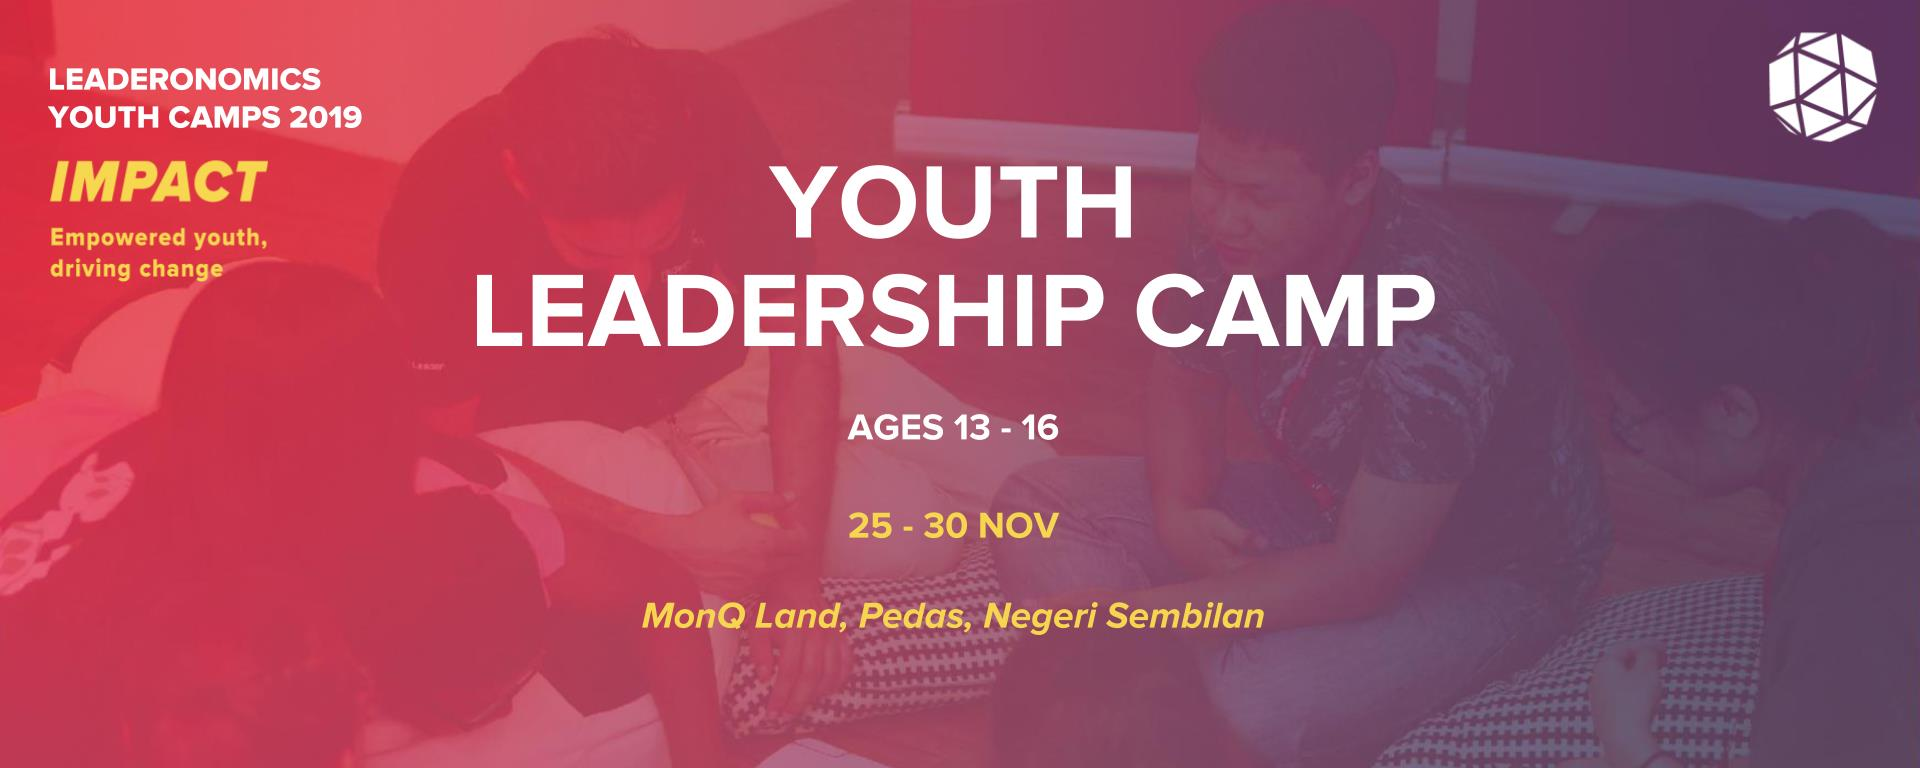 Leaderonomics Youth Leadership Camp - NOV 2019